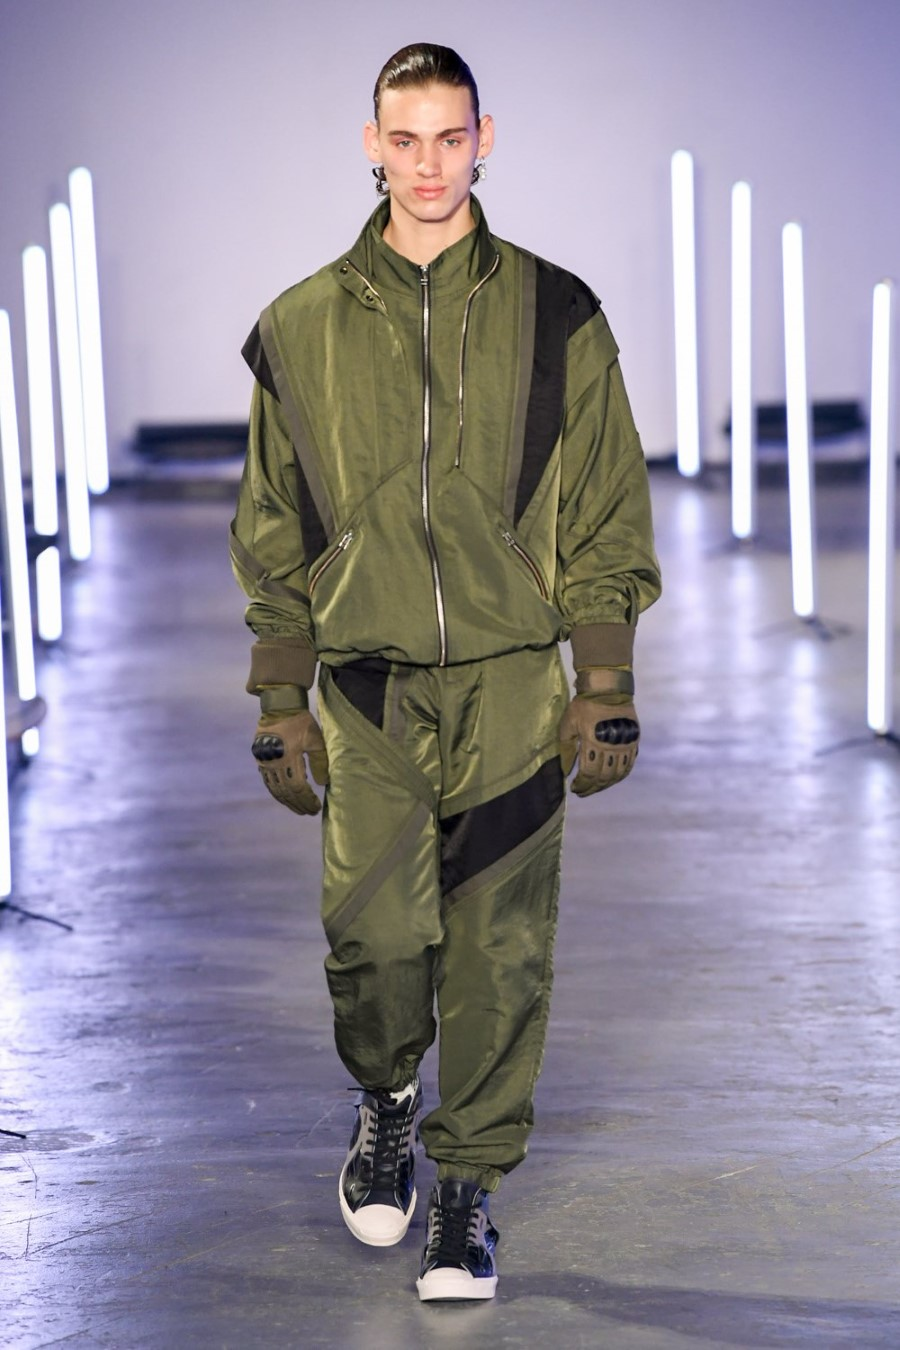 Feng Chen Wang - Automne-Hiver 2020-2021 - London Fashion Week Men's